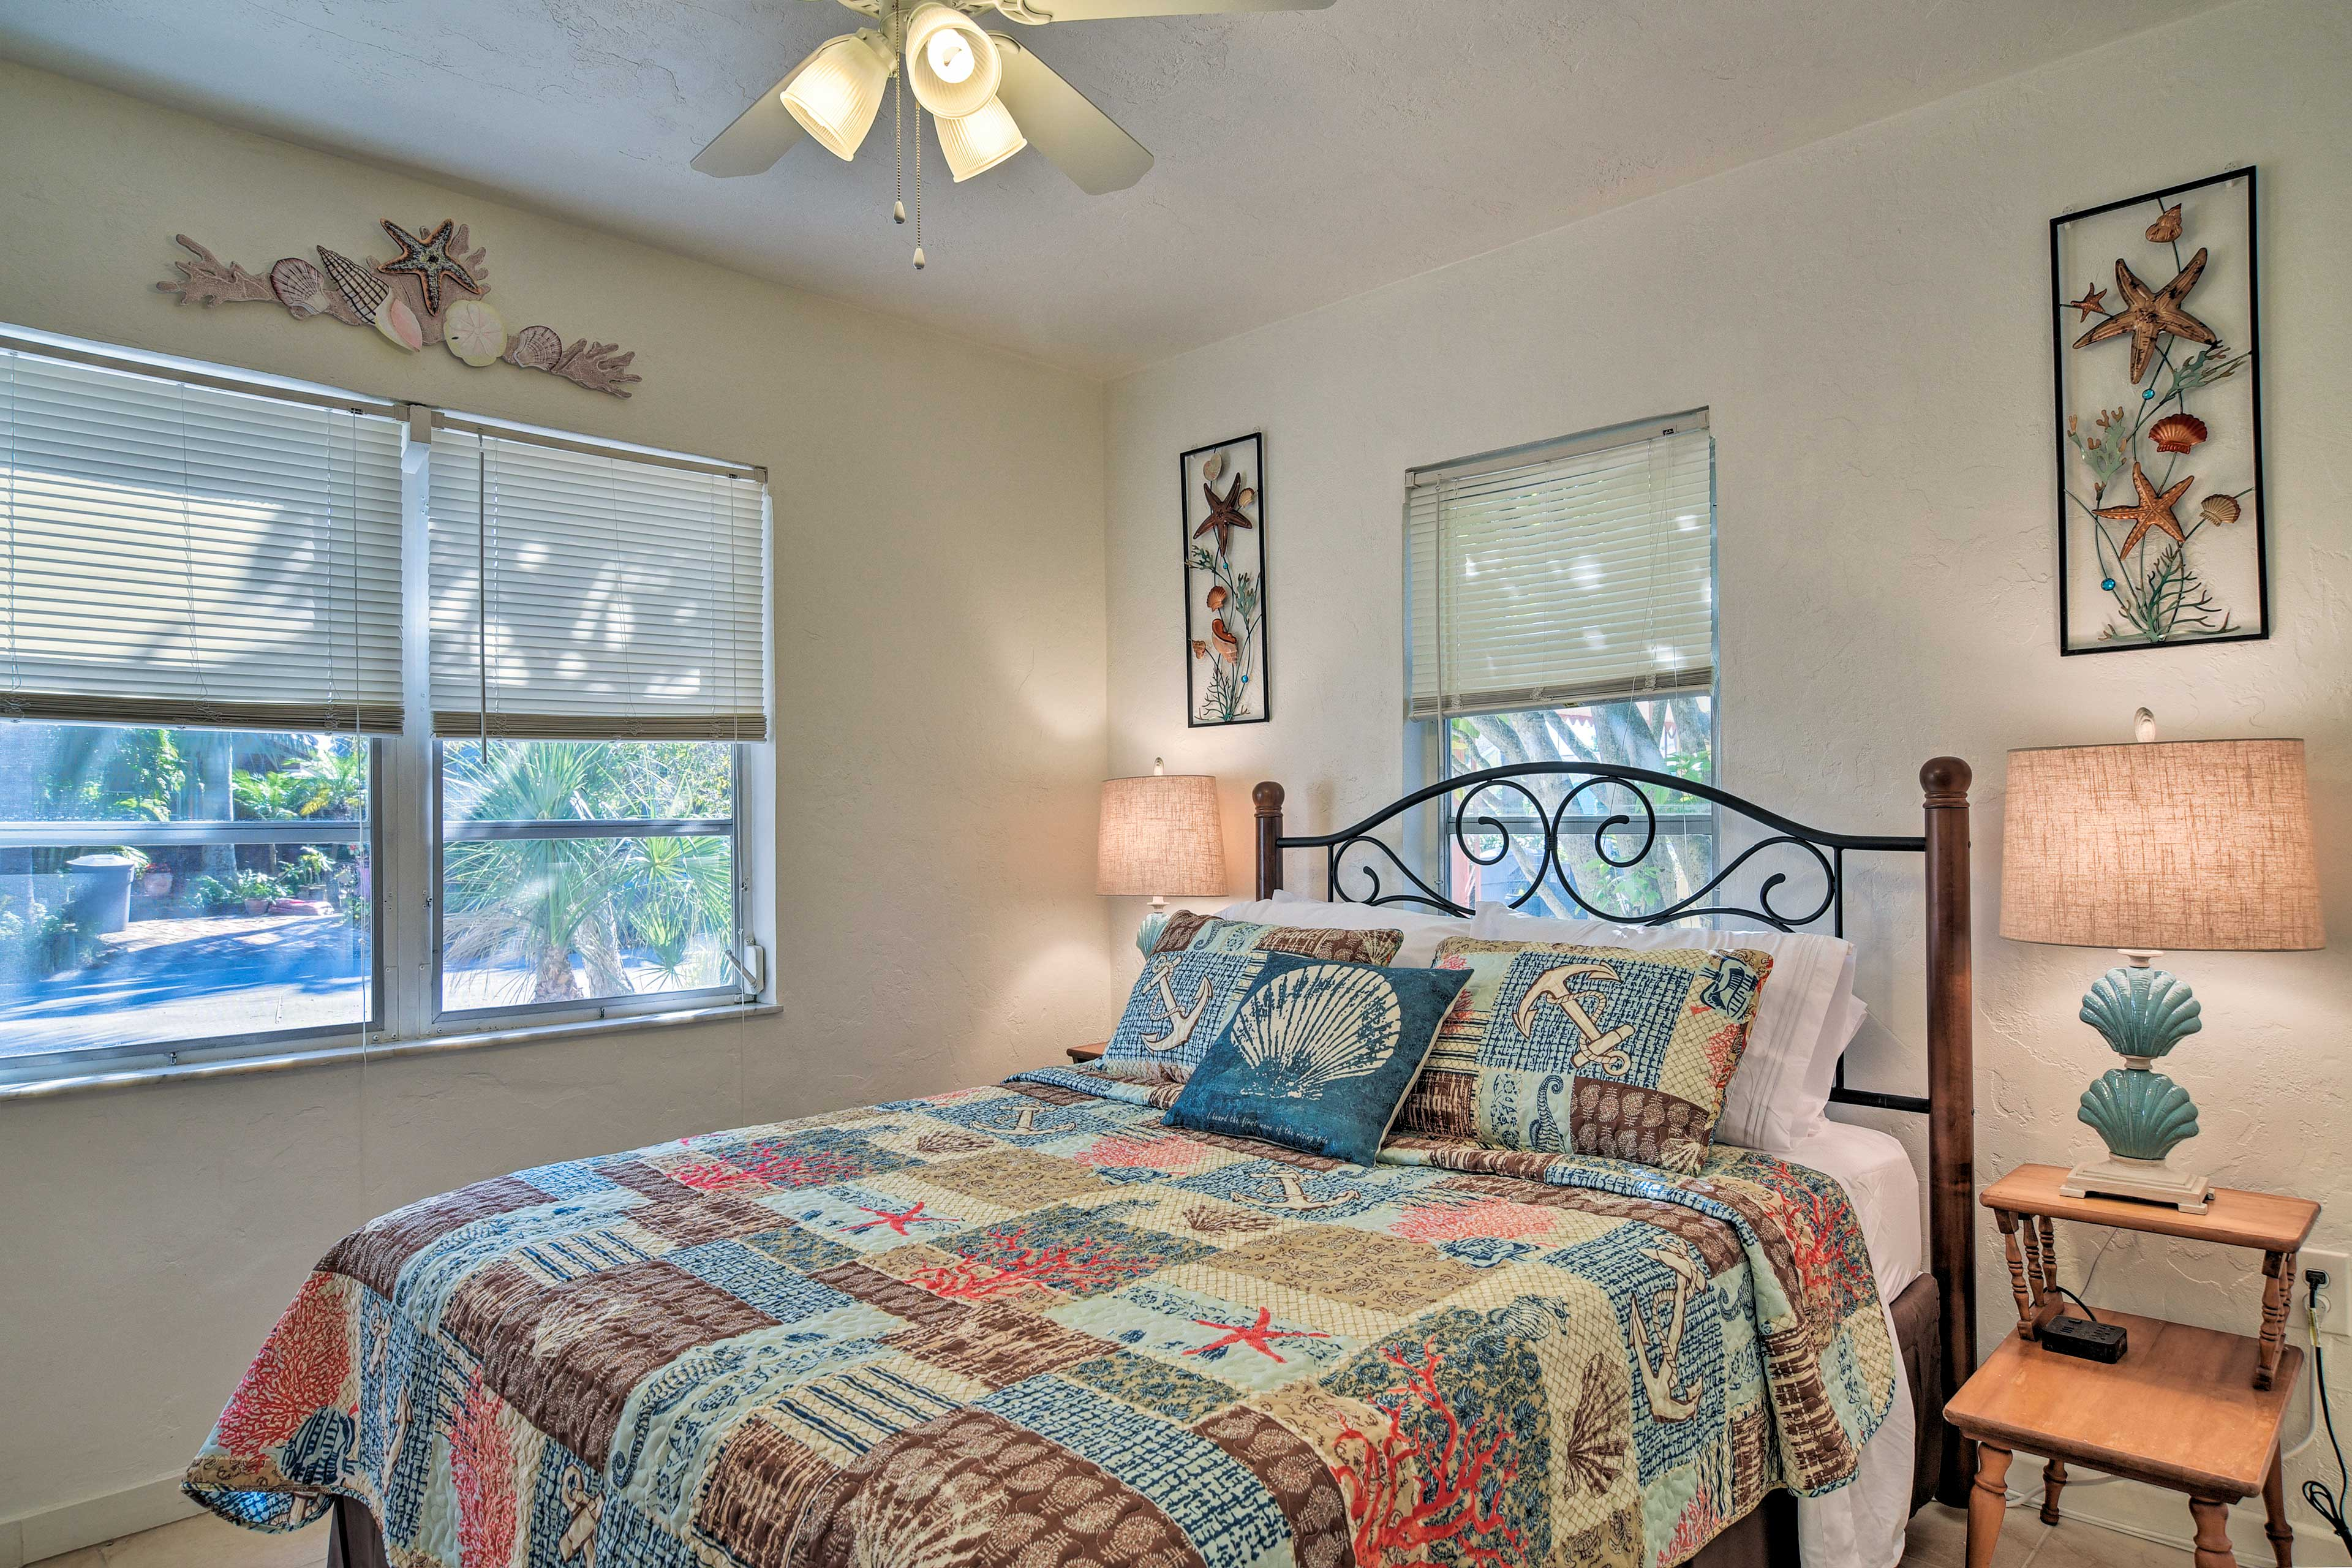 The first bedroom features a plush queen-sized bed.